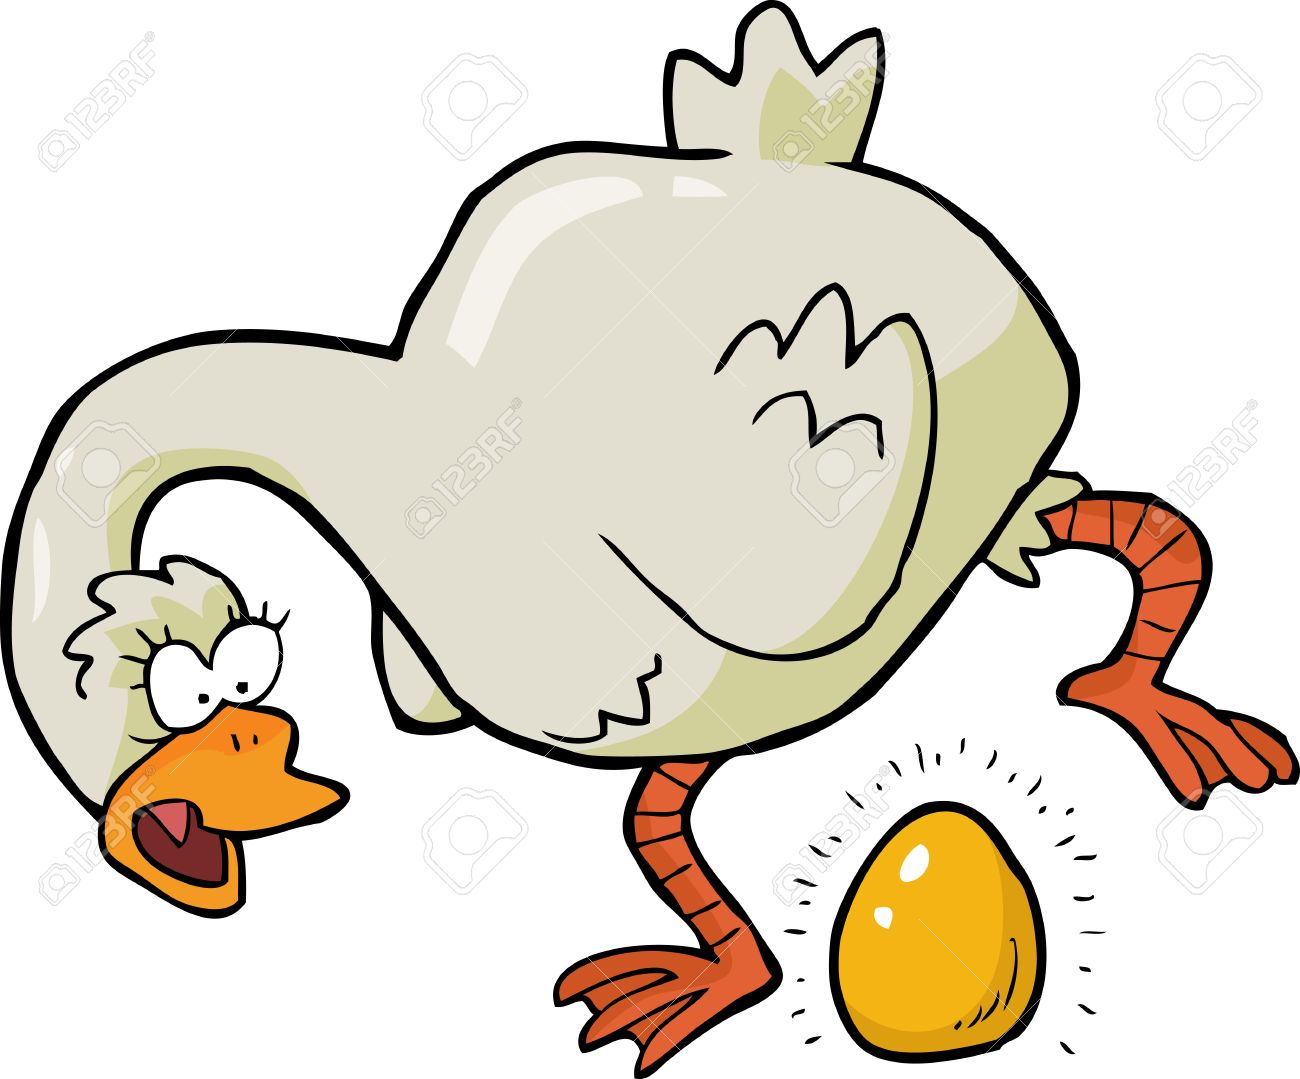 Image result for golden egg cartoon